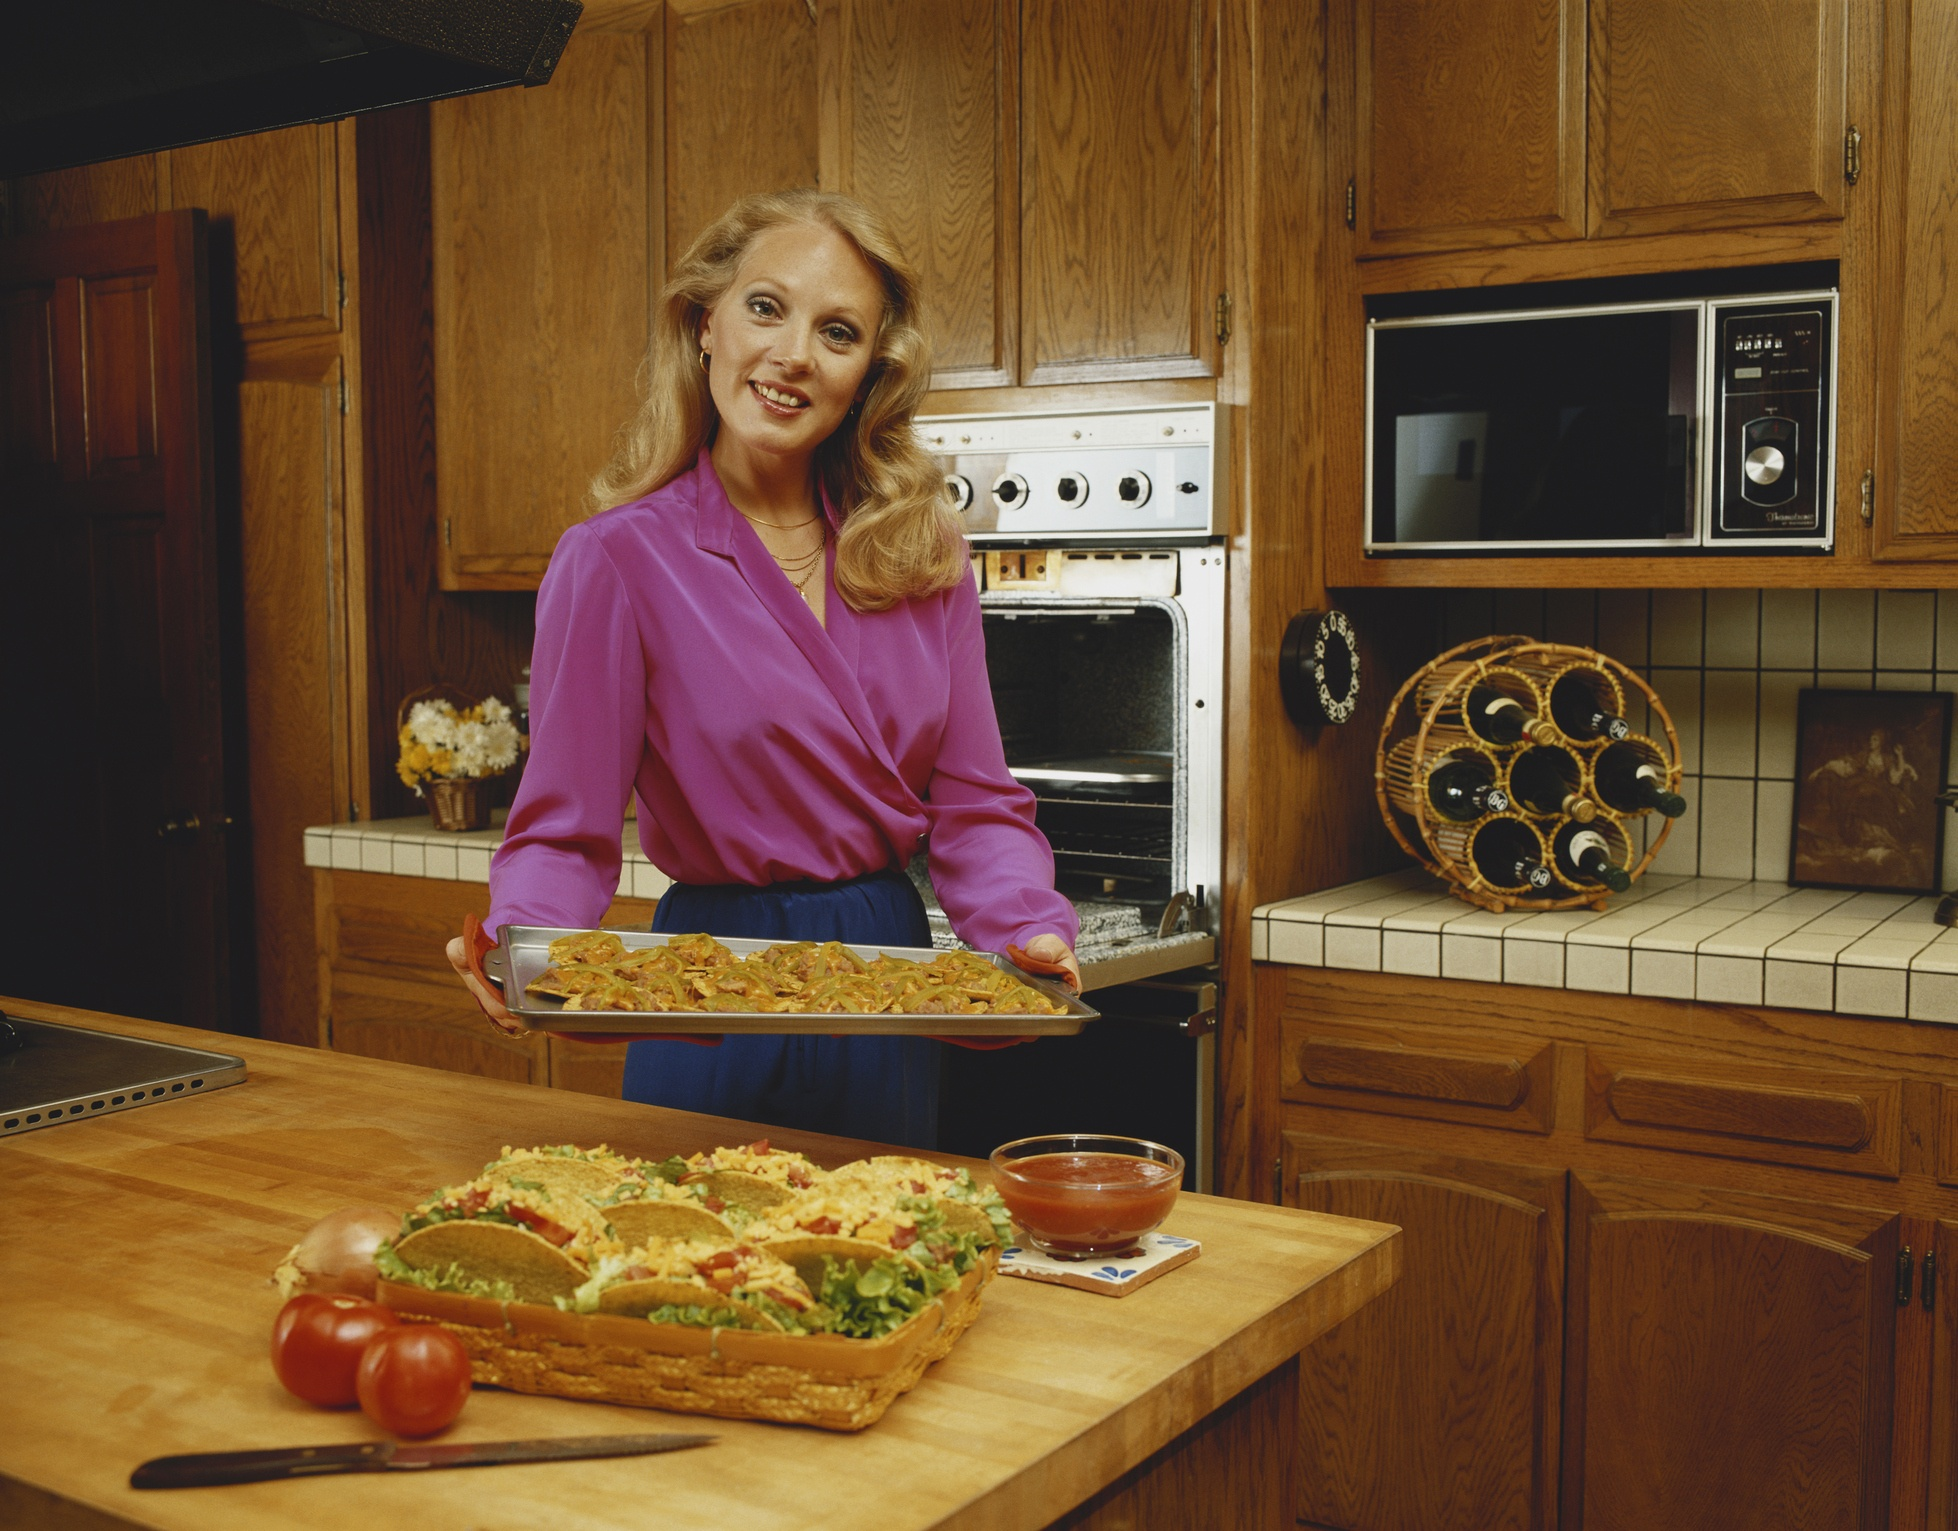 woman cooking in 1980s kitchen